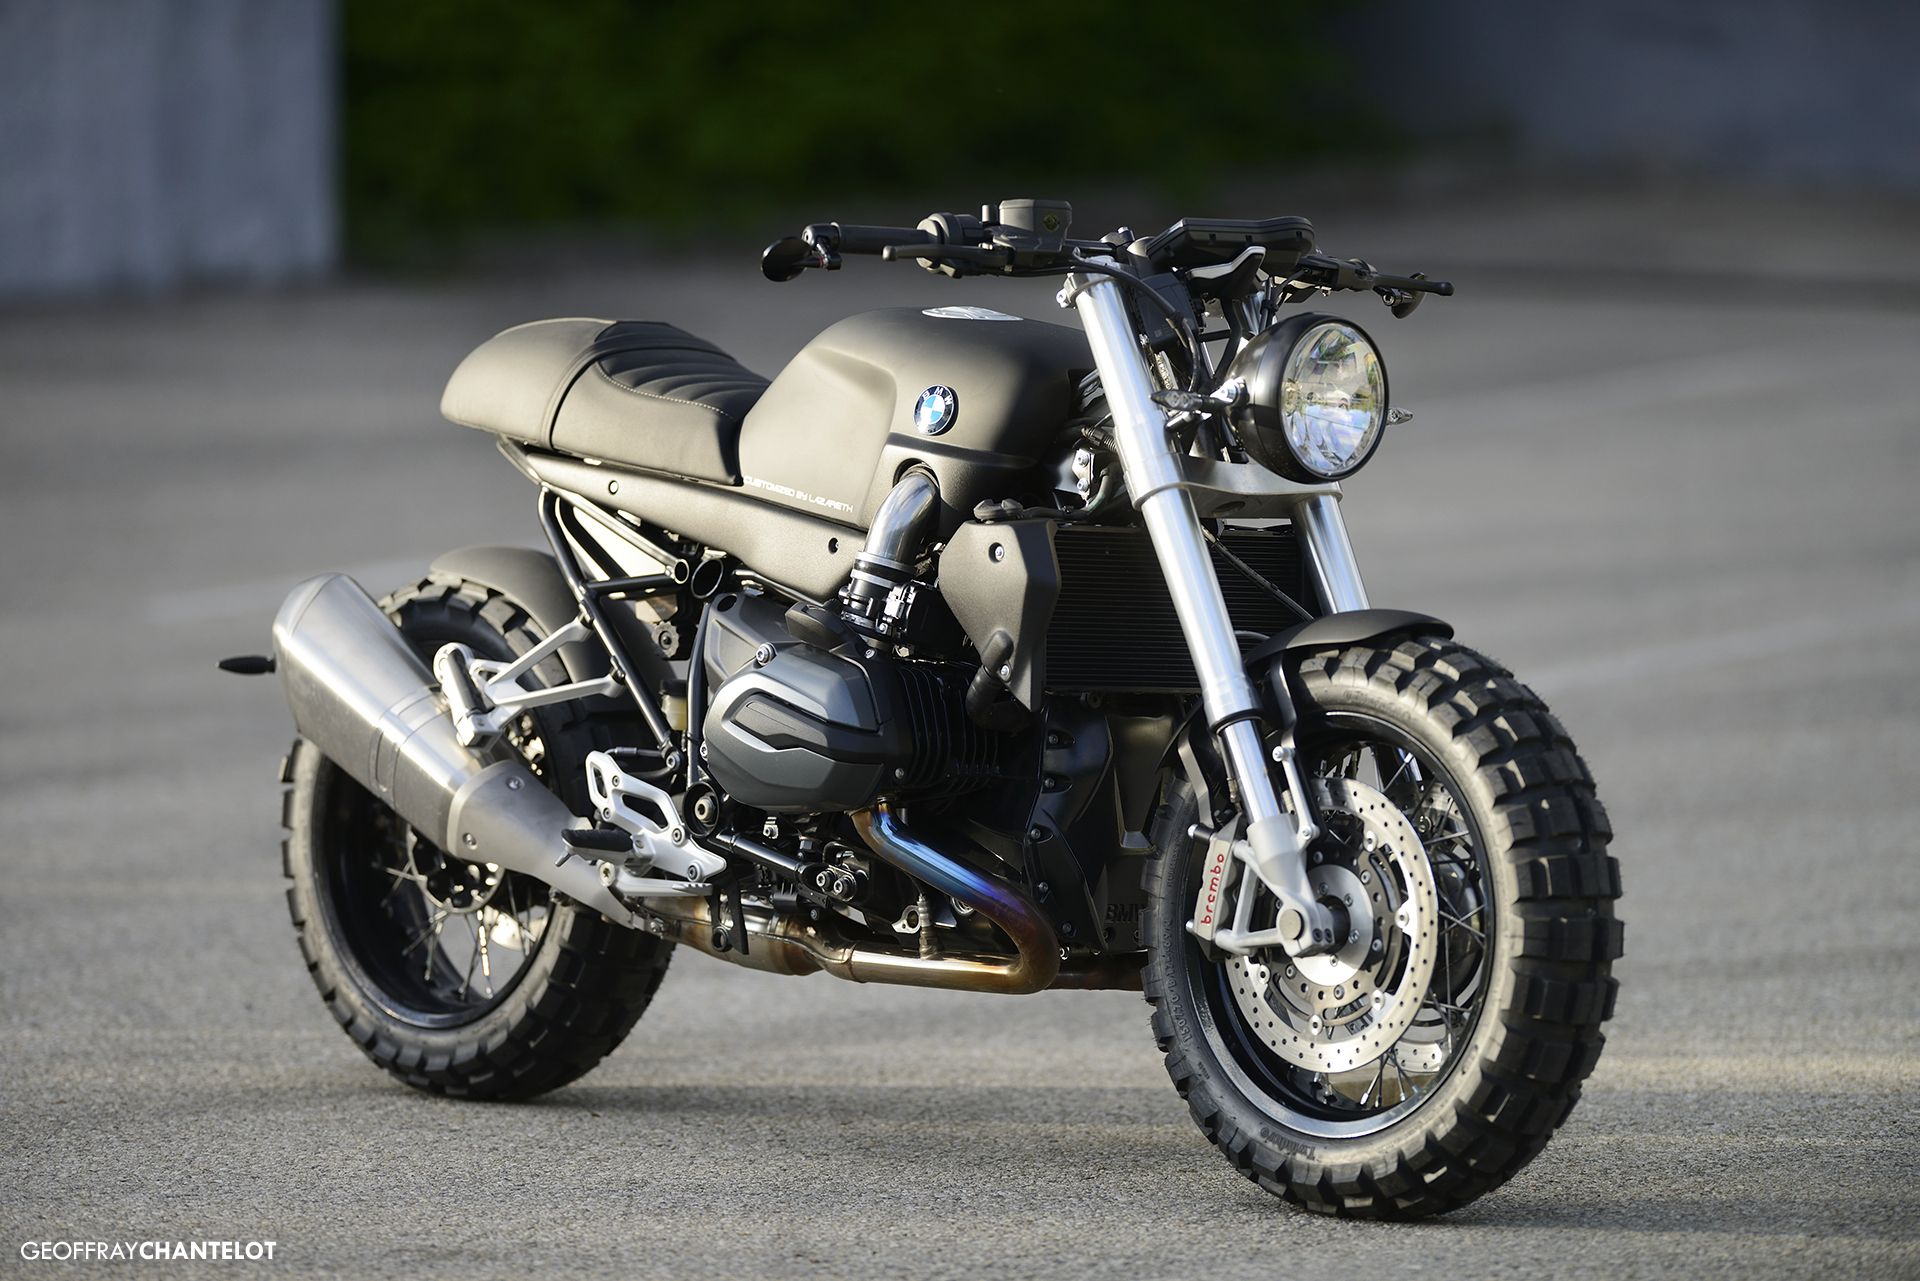 ddc77d428478e8d726db45e35b689d50 Extraordinary Bmw R 1200 R Street Fighter Cars Trend